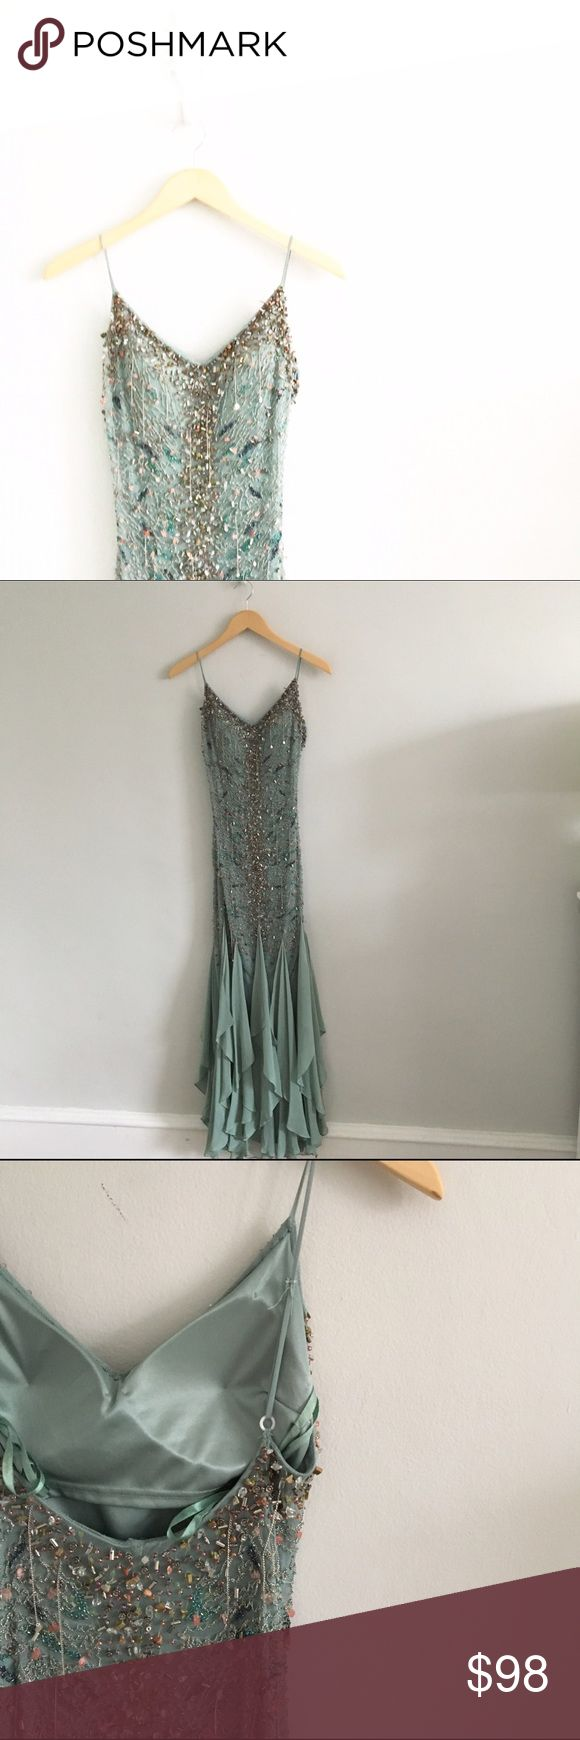 Sue Wong Nocturne Silk Beaded Sequin Mint Dress 100% silk shell. 100% polyester lining. Size 4. Adjustable straps. Absolutely gorgeous condition, no rips or stains. All beading appears to be intact. Please see all pictures for an accurate description of condition. First picture filtered. *1124160499* Sue Wong Dresses Prom